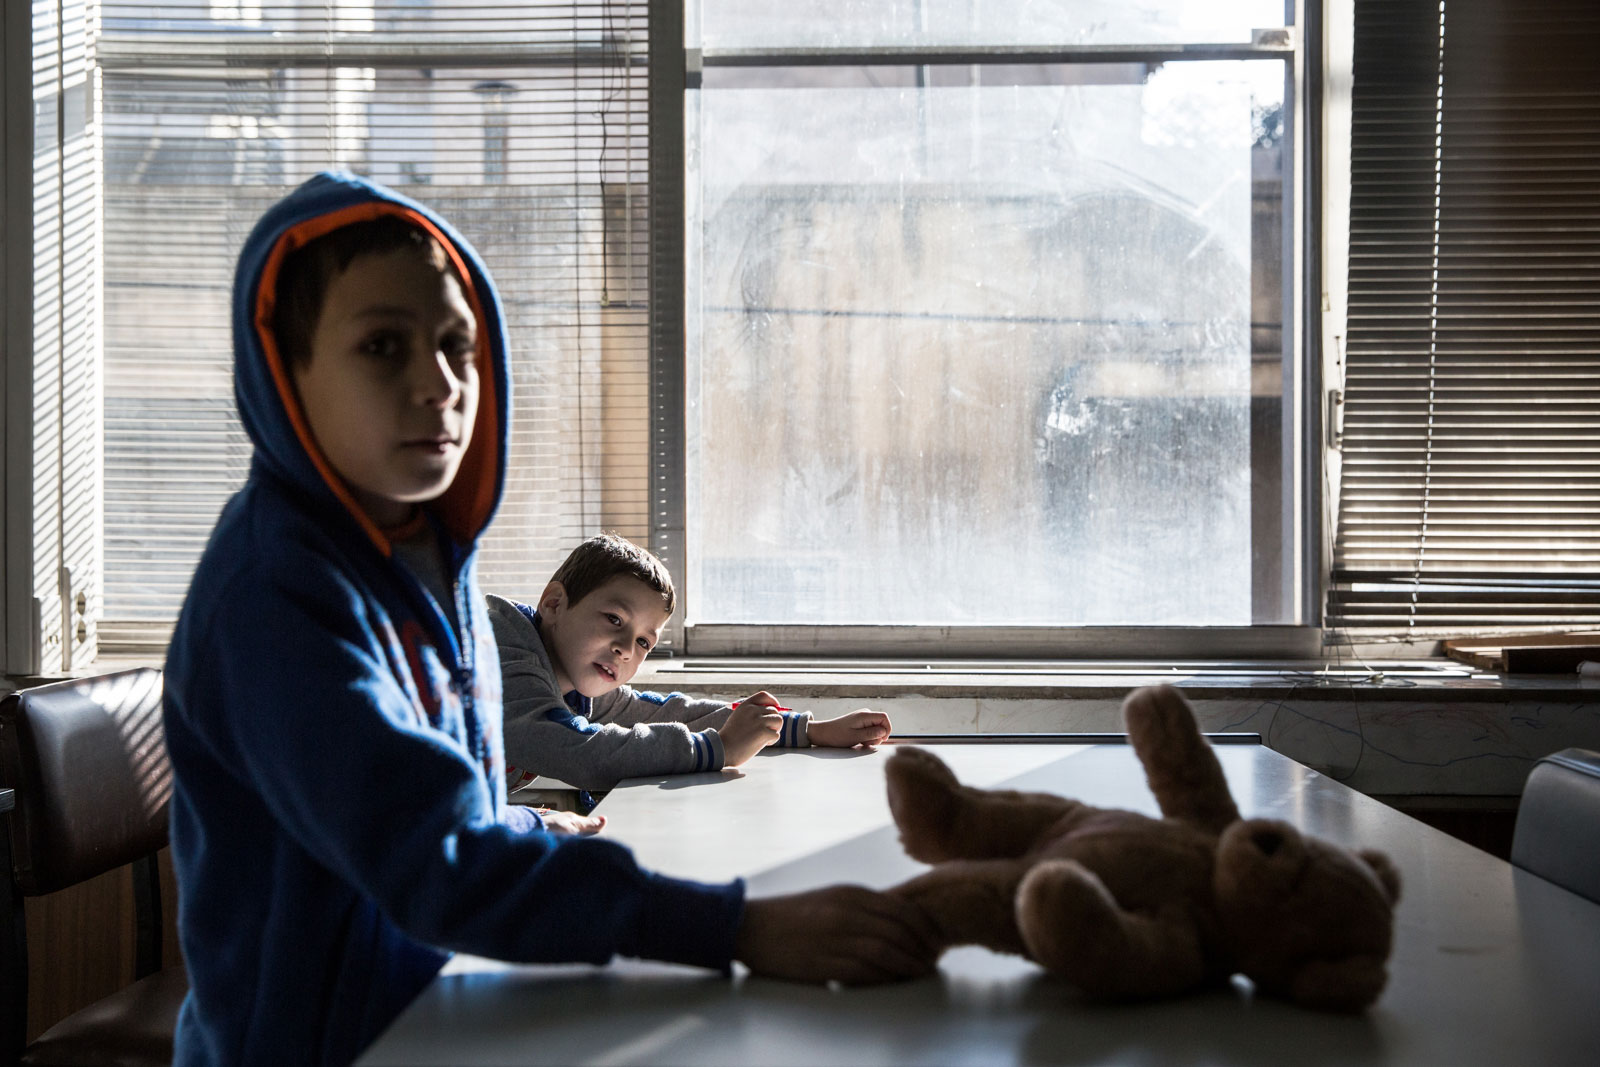 Children play in one of the rooms at 26 Notara Street, Athens, the former tax office that now houses refugees now trapped in Greece. [Ioana Moldovan/Al Jazeera]